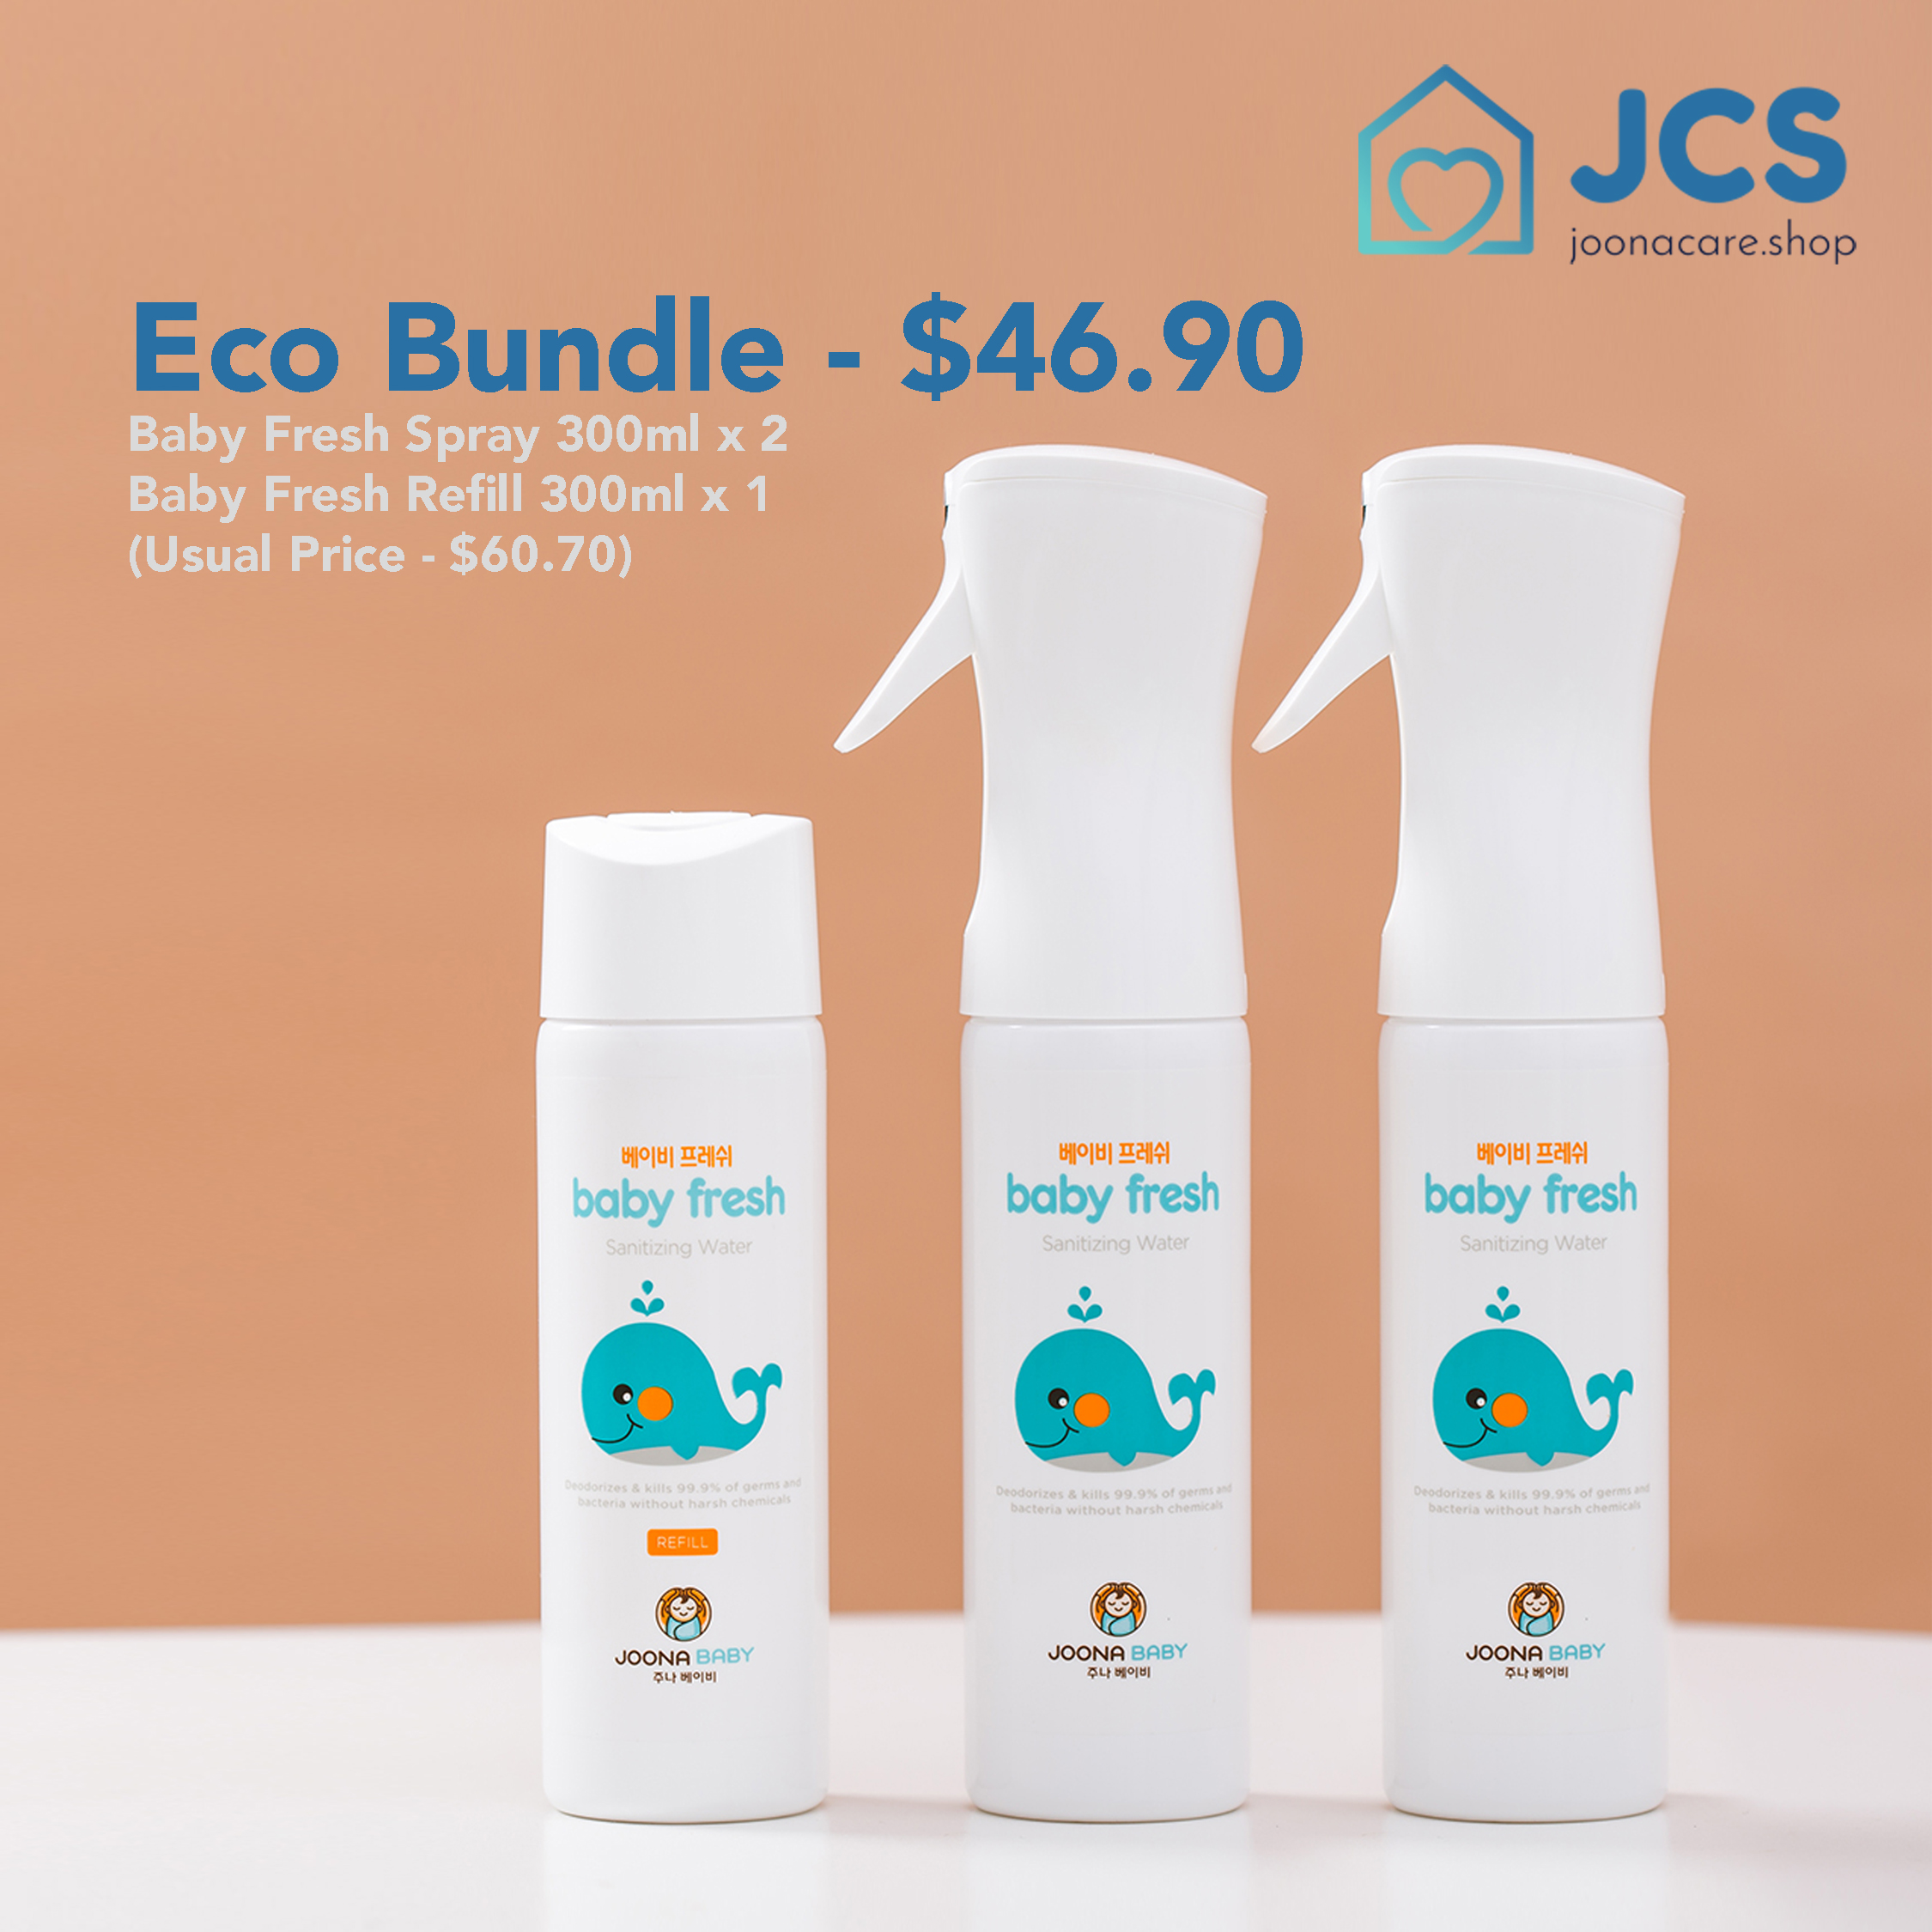 baby-fairJoona Baby Fresh Eco Bundle (Spray 300mlx2 + Refill 300mlx1)